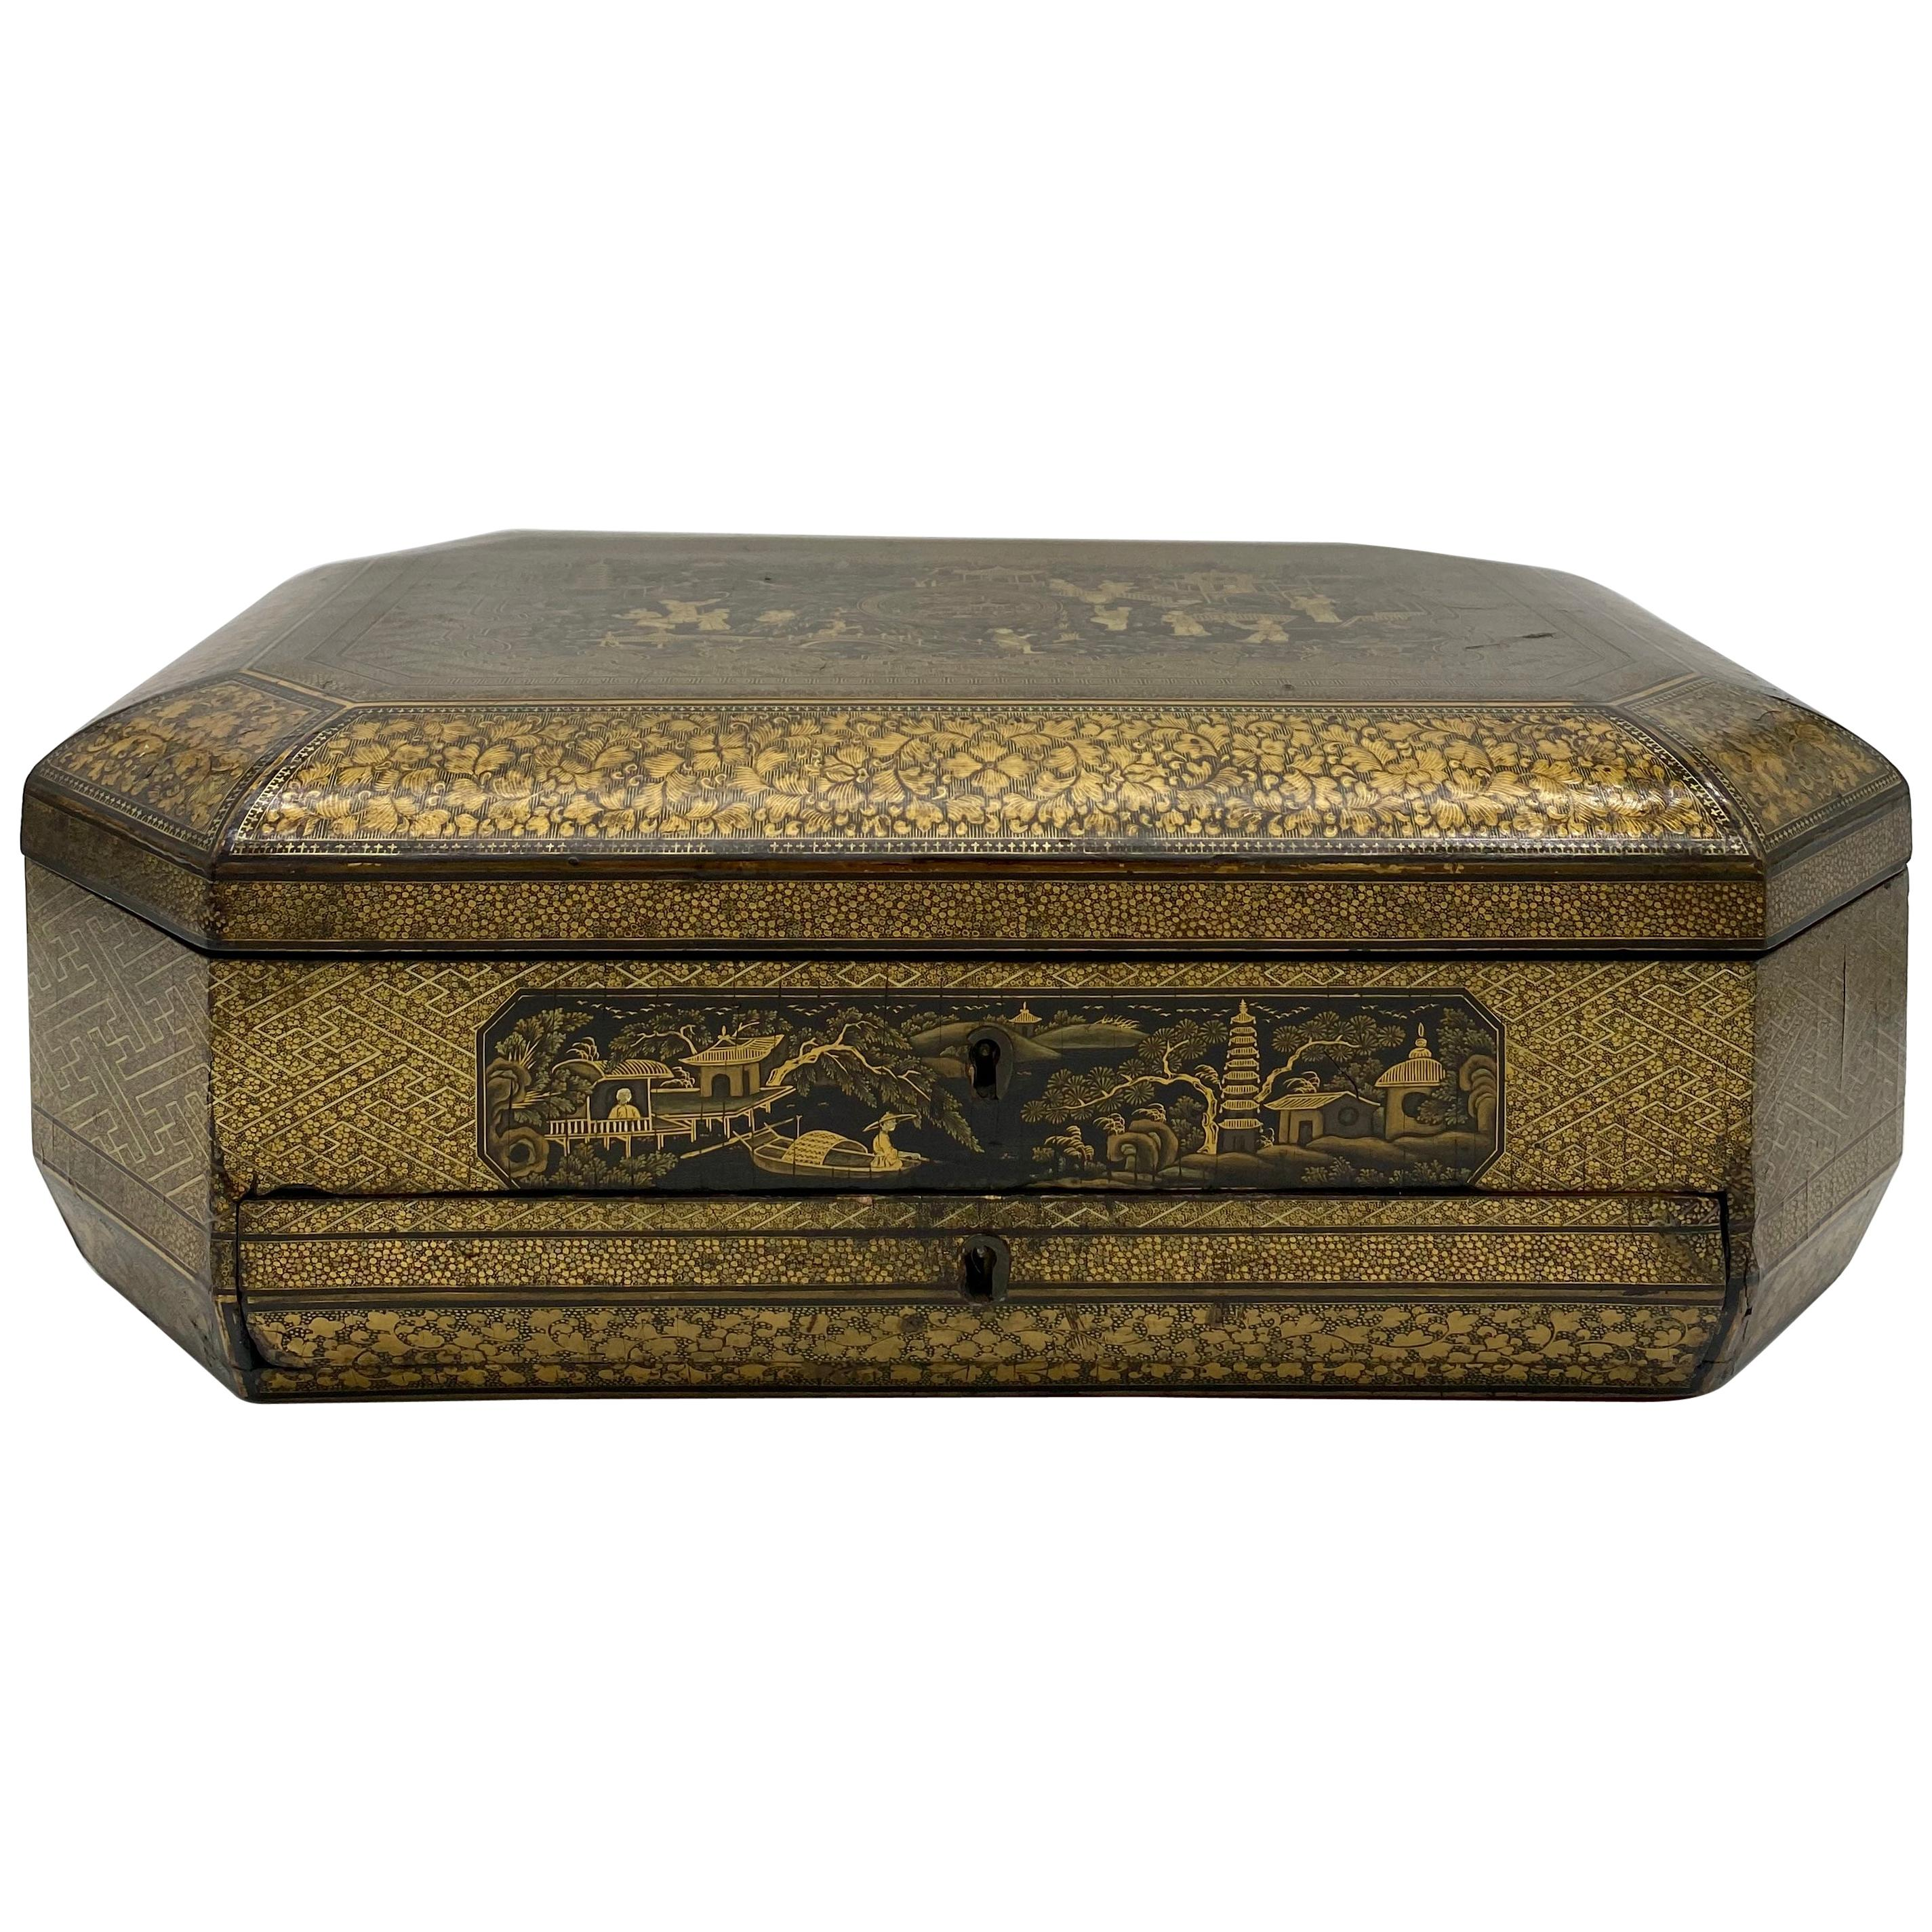 19th Century Large Chinese Lacquer Tea Caddy